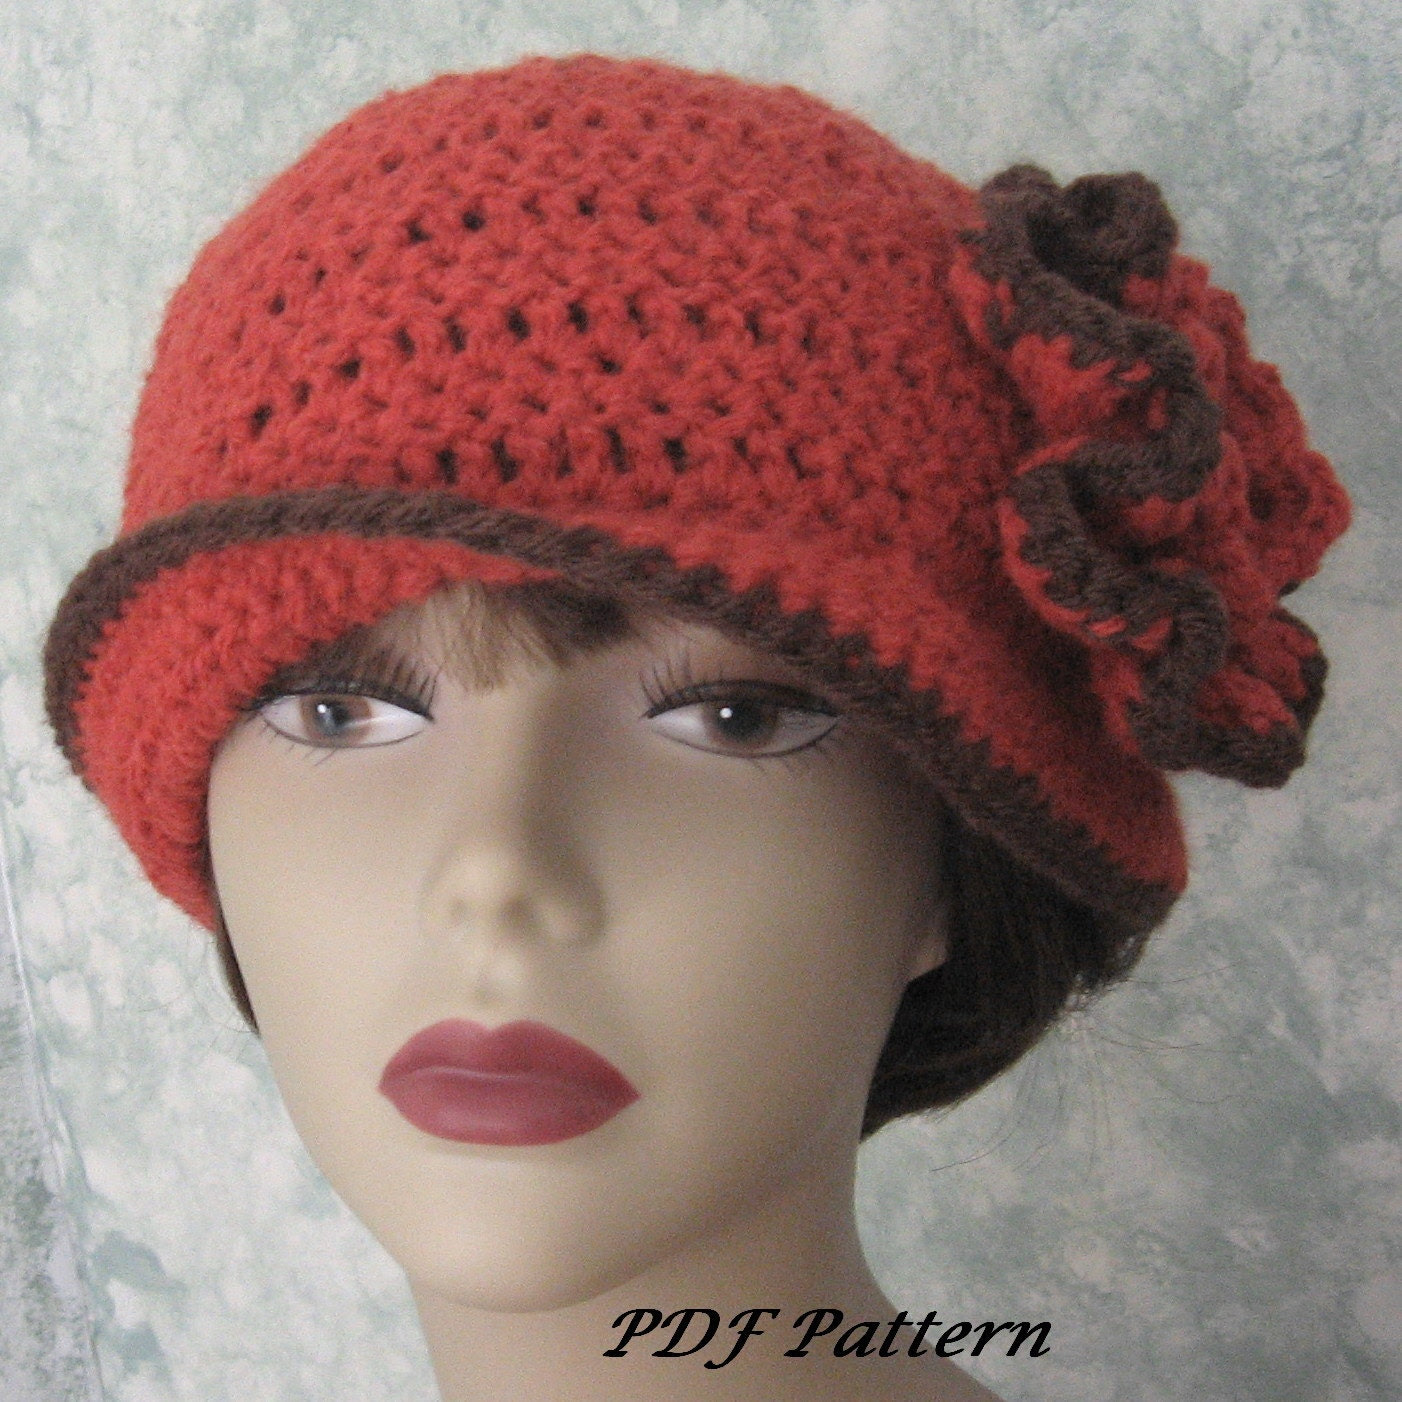 Womens Crochet Hat Pattern With Double Flower Trim PDF Easy To Make Resell finished